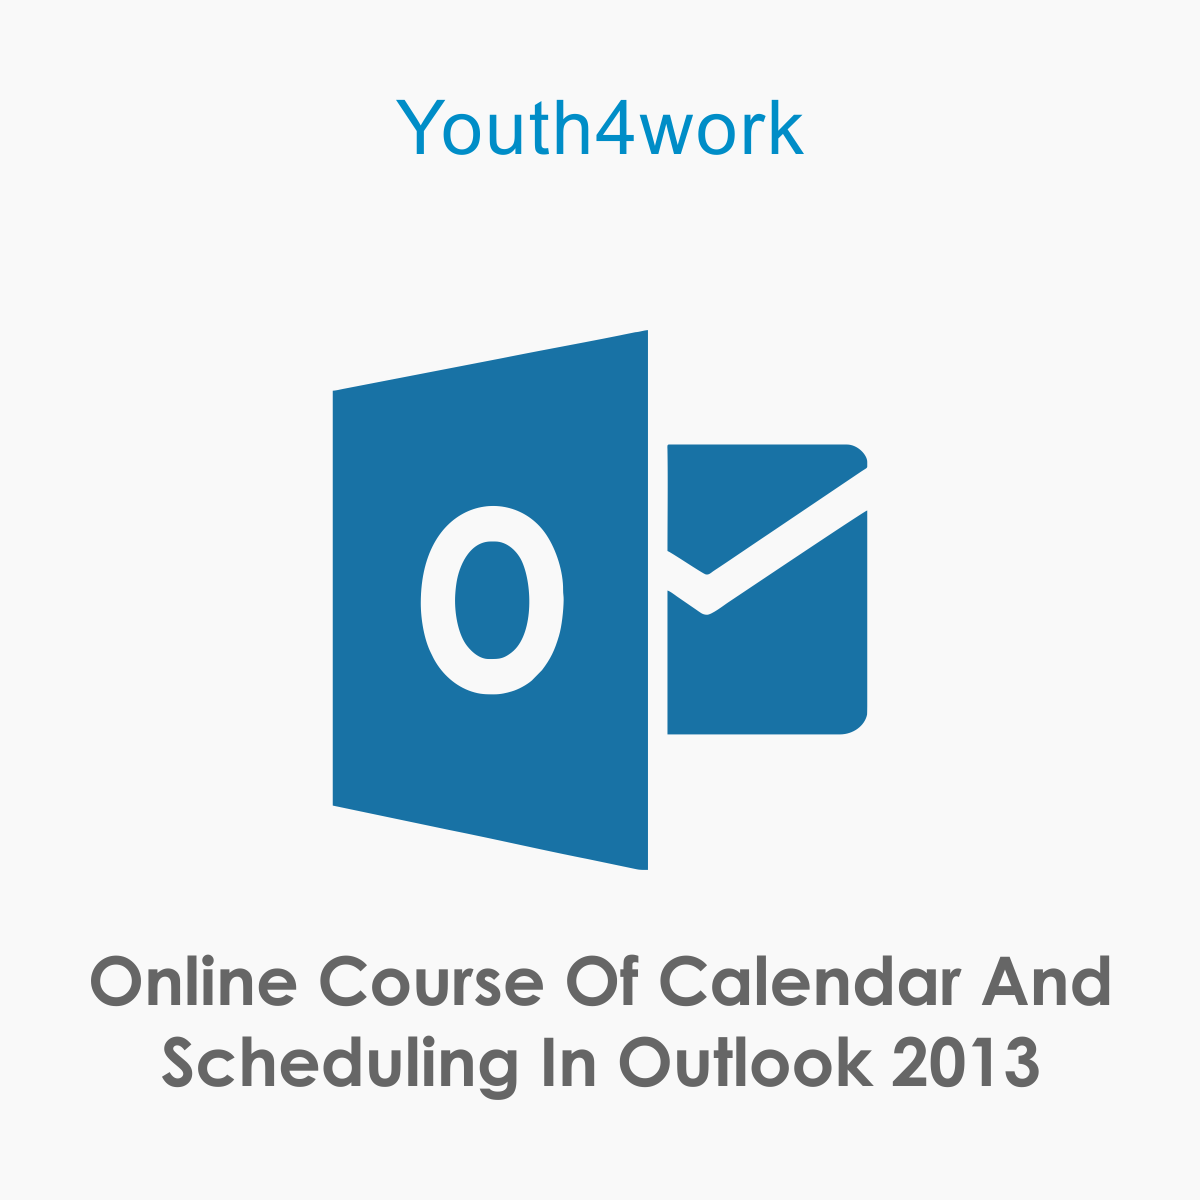 Calendar and Scheduling in Outlook 2013